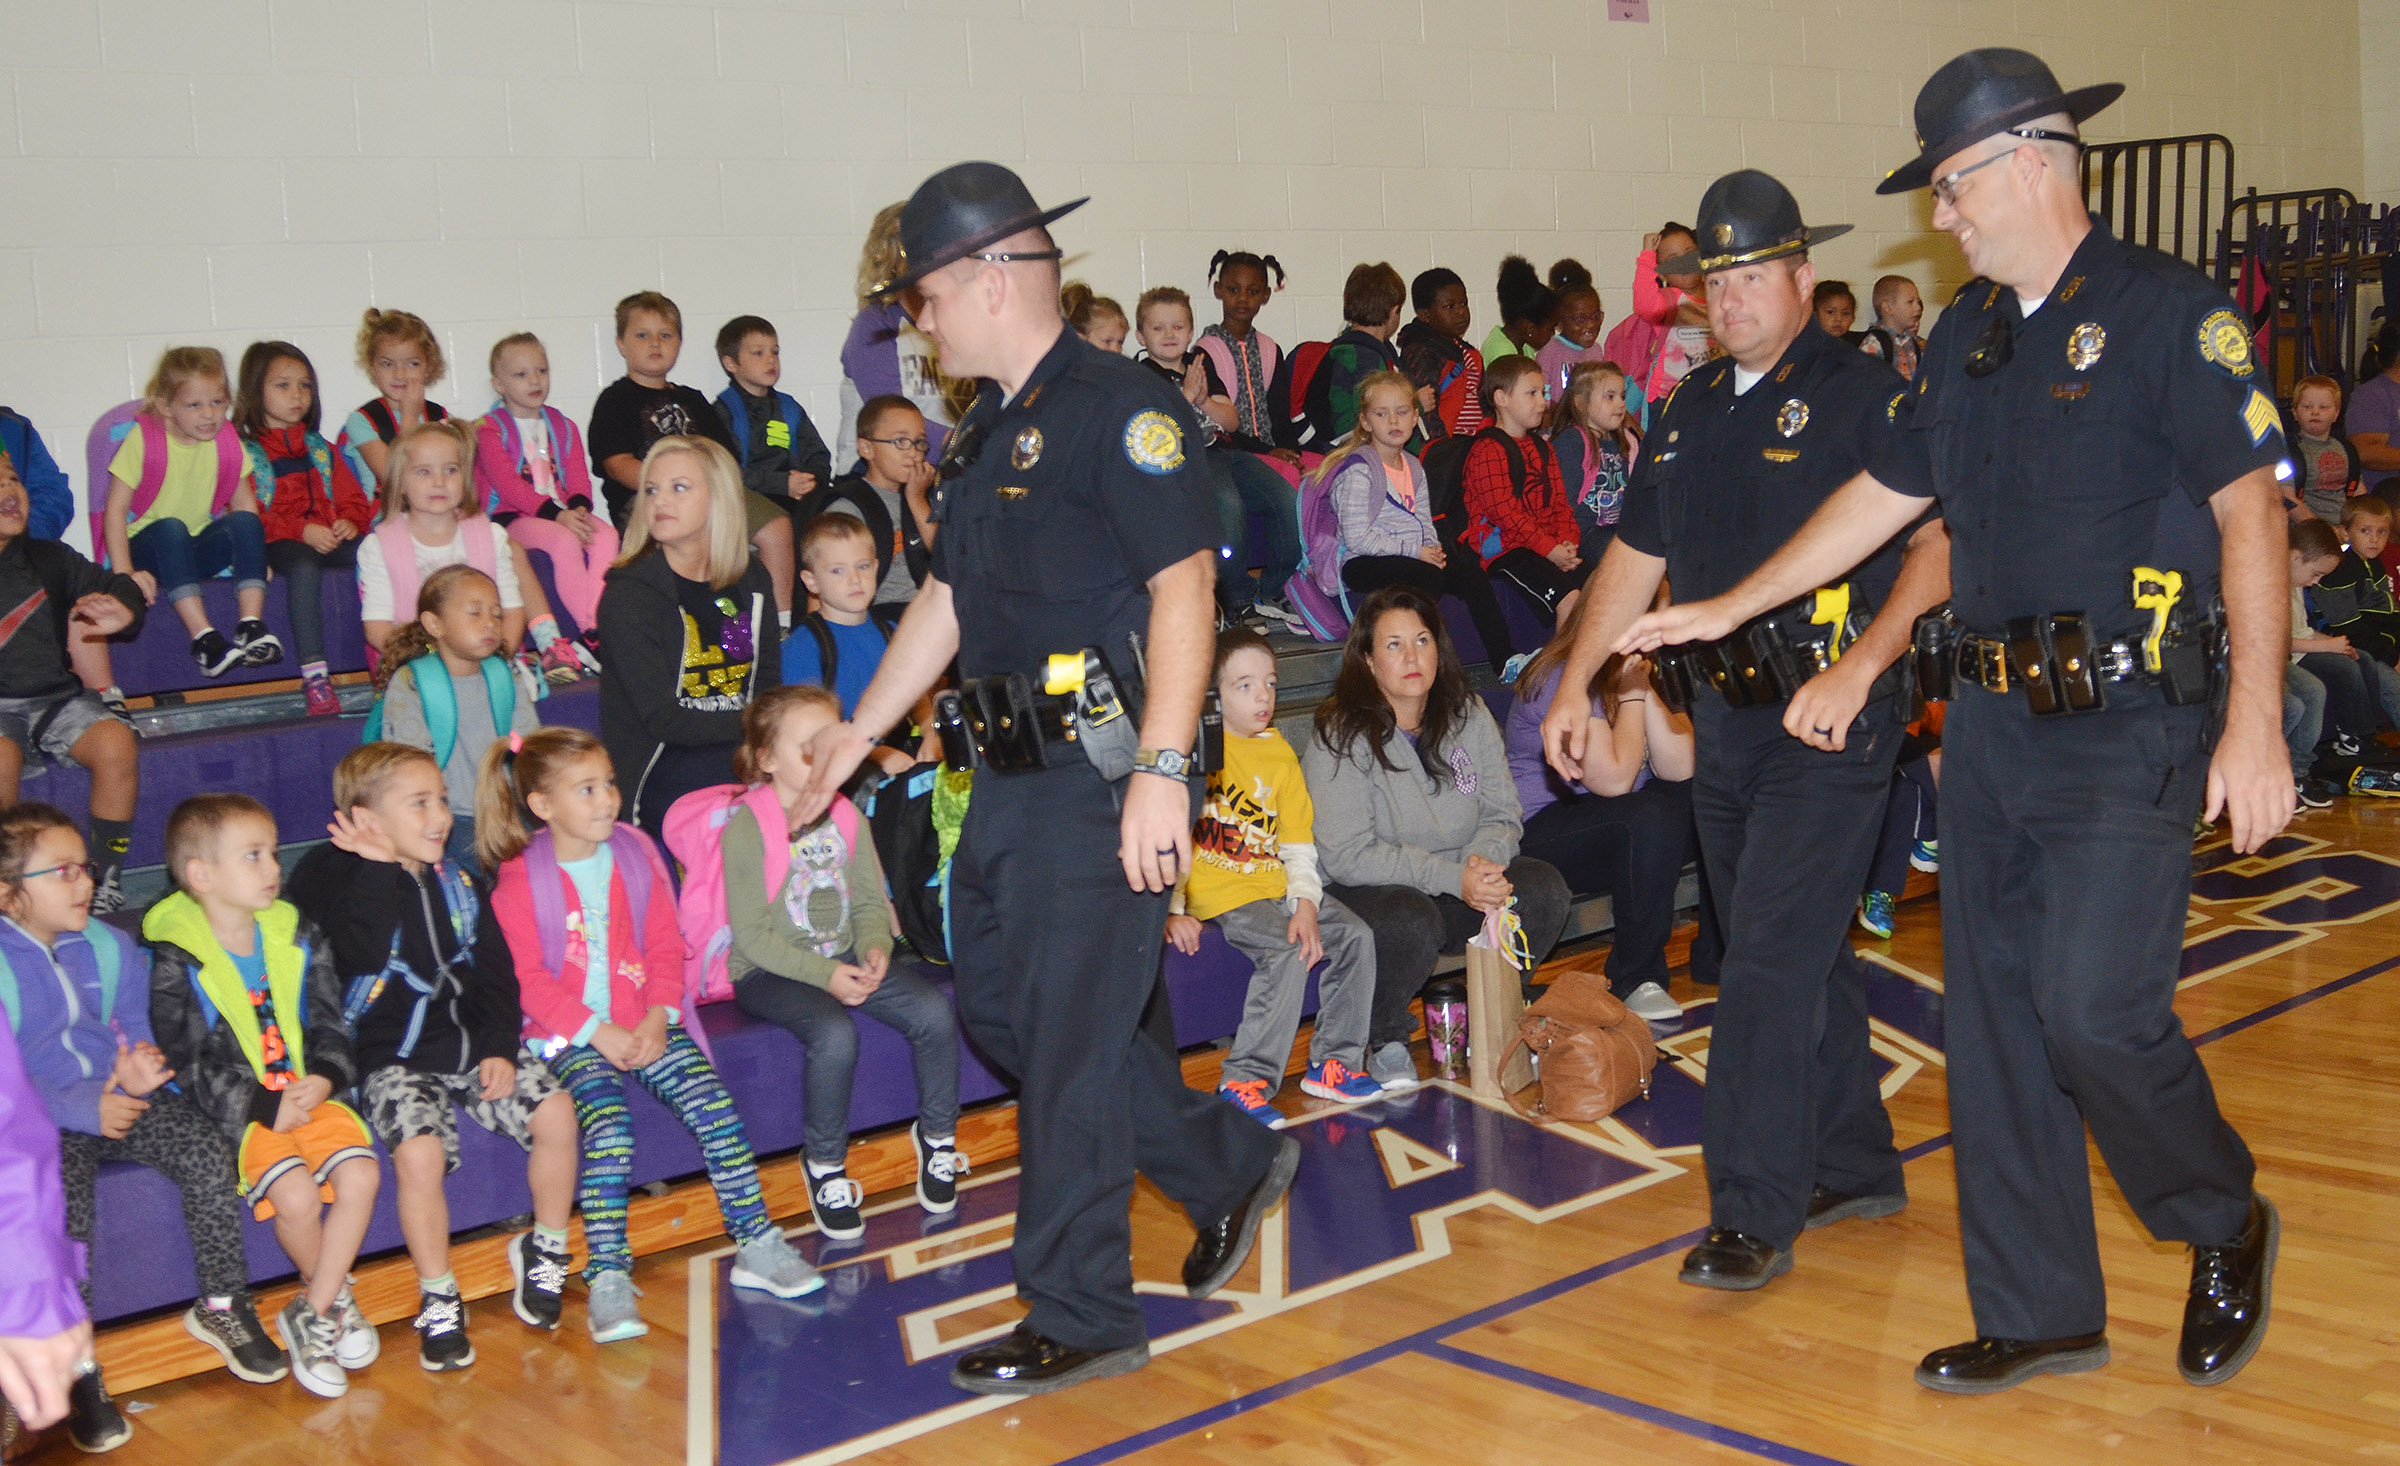 From left, Campbellsville Police officers Jake Hedgespeth, Ryan Jewell and David Tucker greet CES students during their Friday morning assembly.